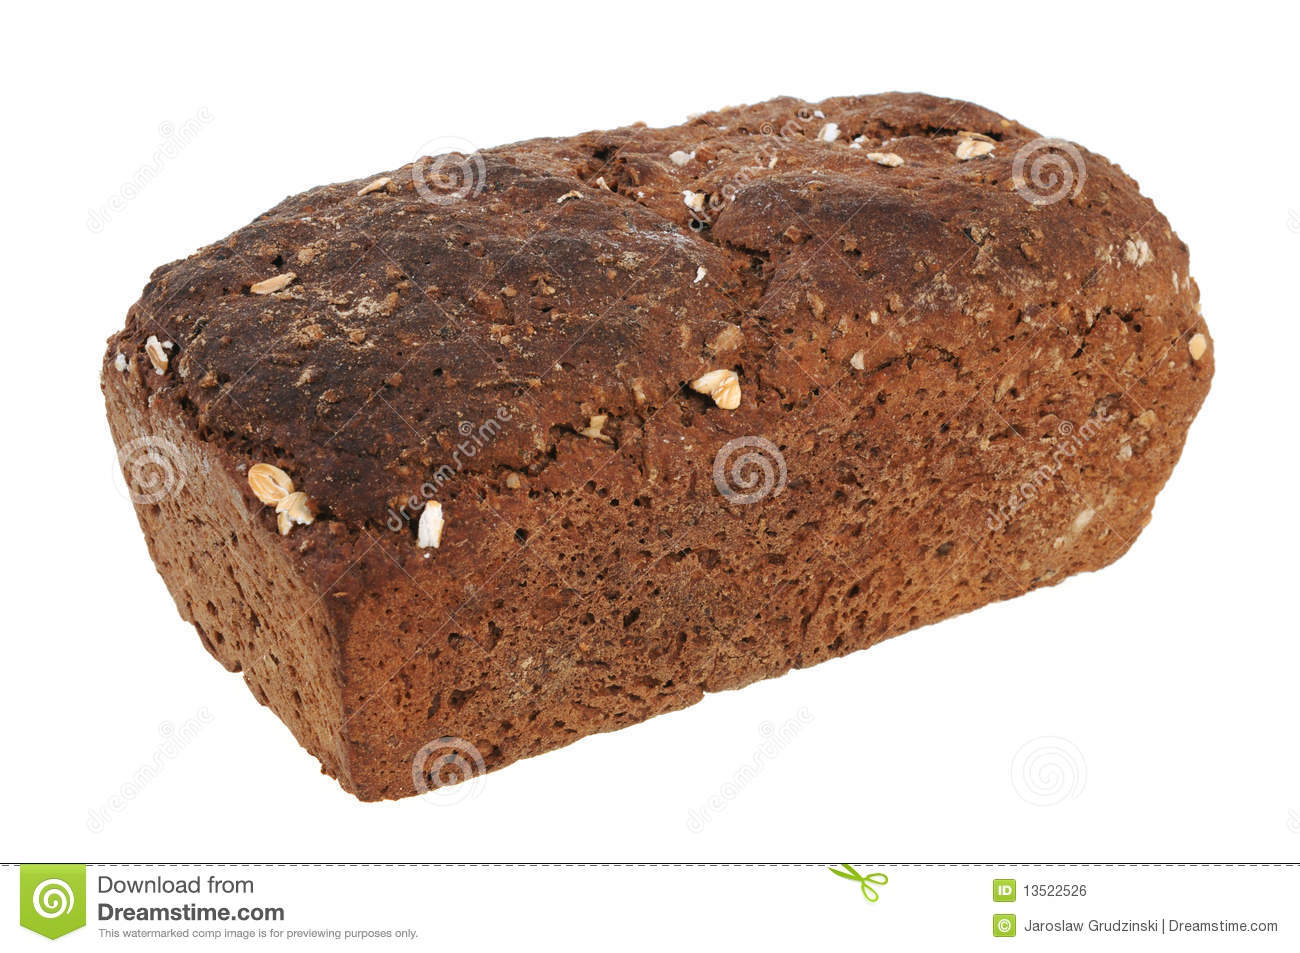 Brown Bread Royalty Free Stock Image - Image: 13522526